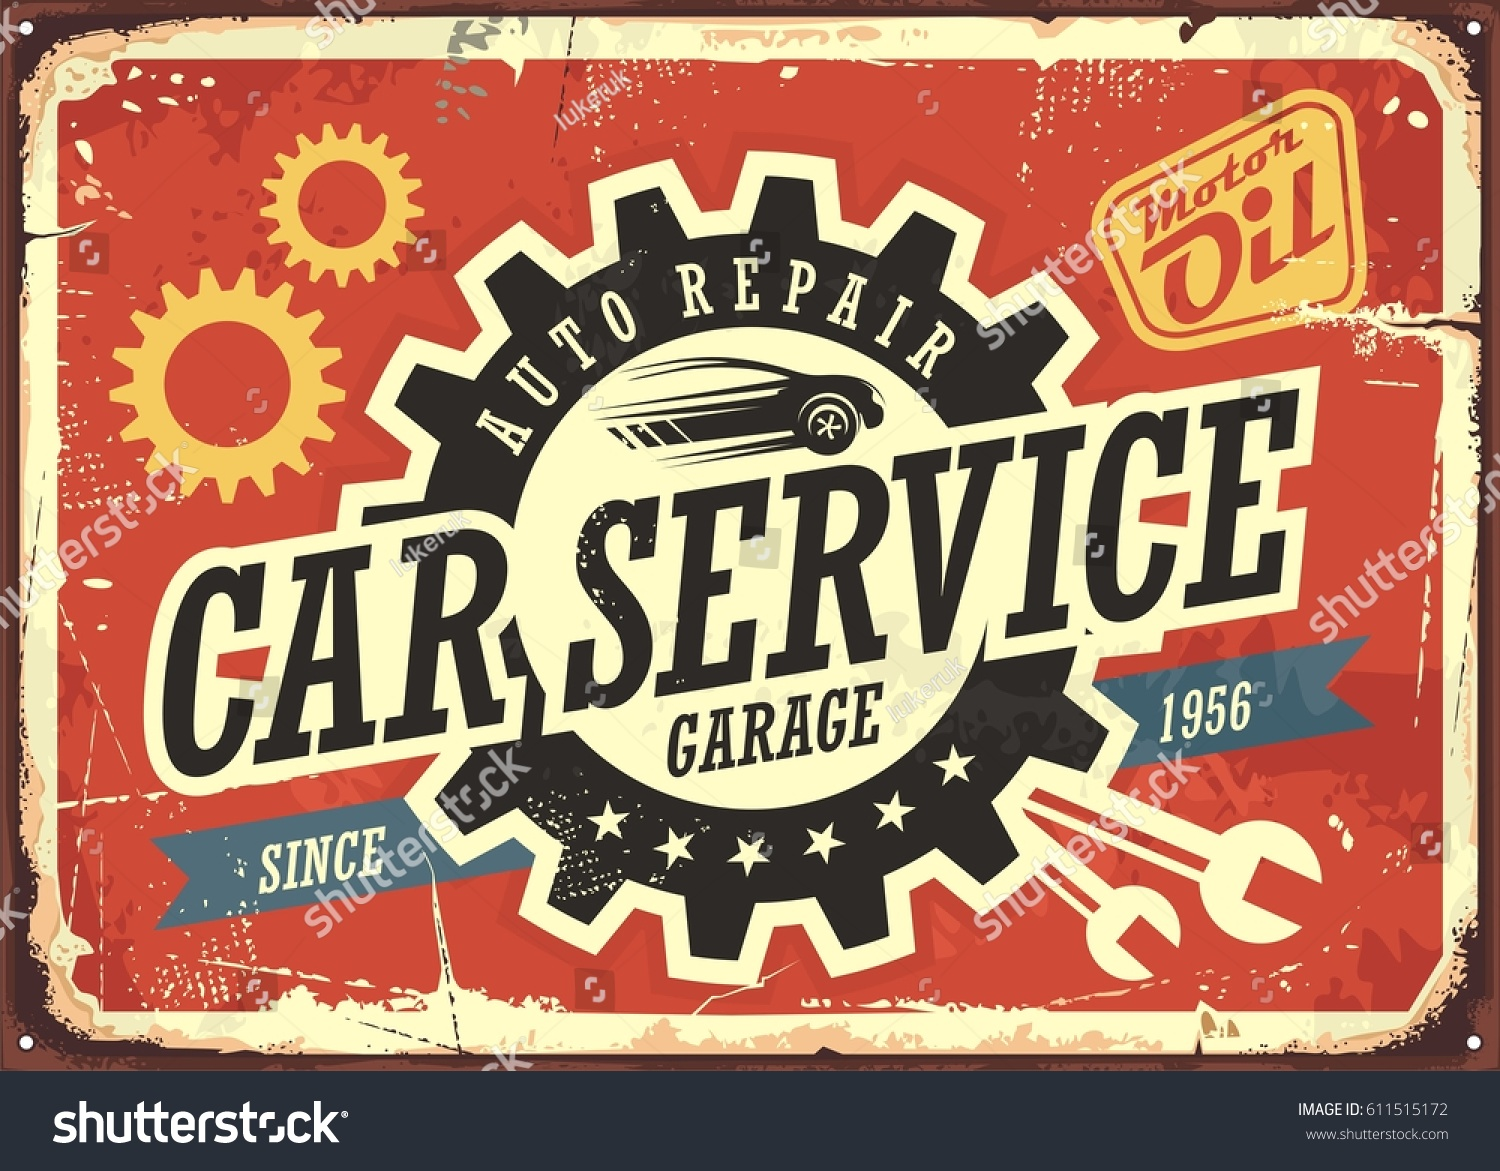 car service vintage tin sign design stock vector 611515172 car service vintage tin sign design concept for garage or auto mechanic retro signboard with